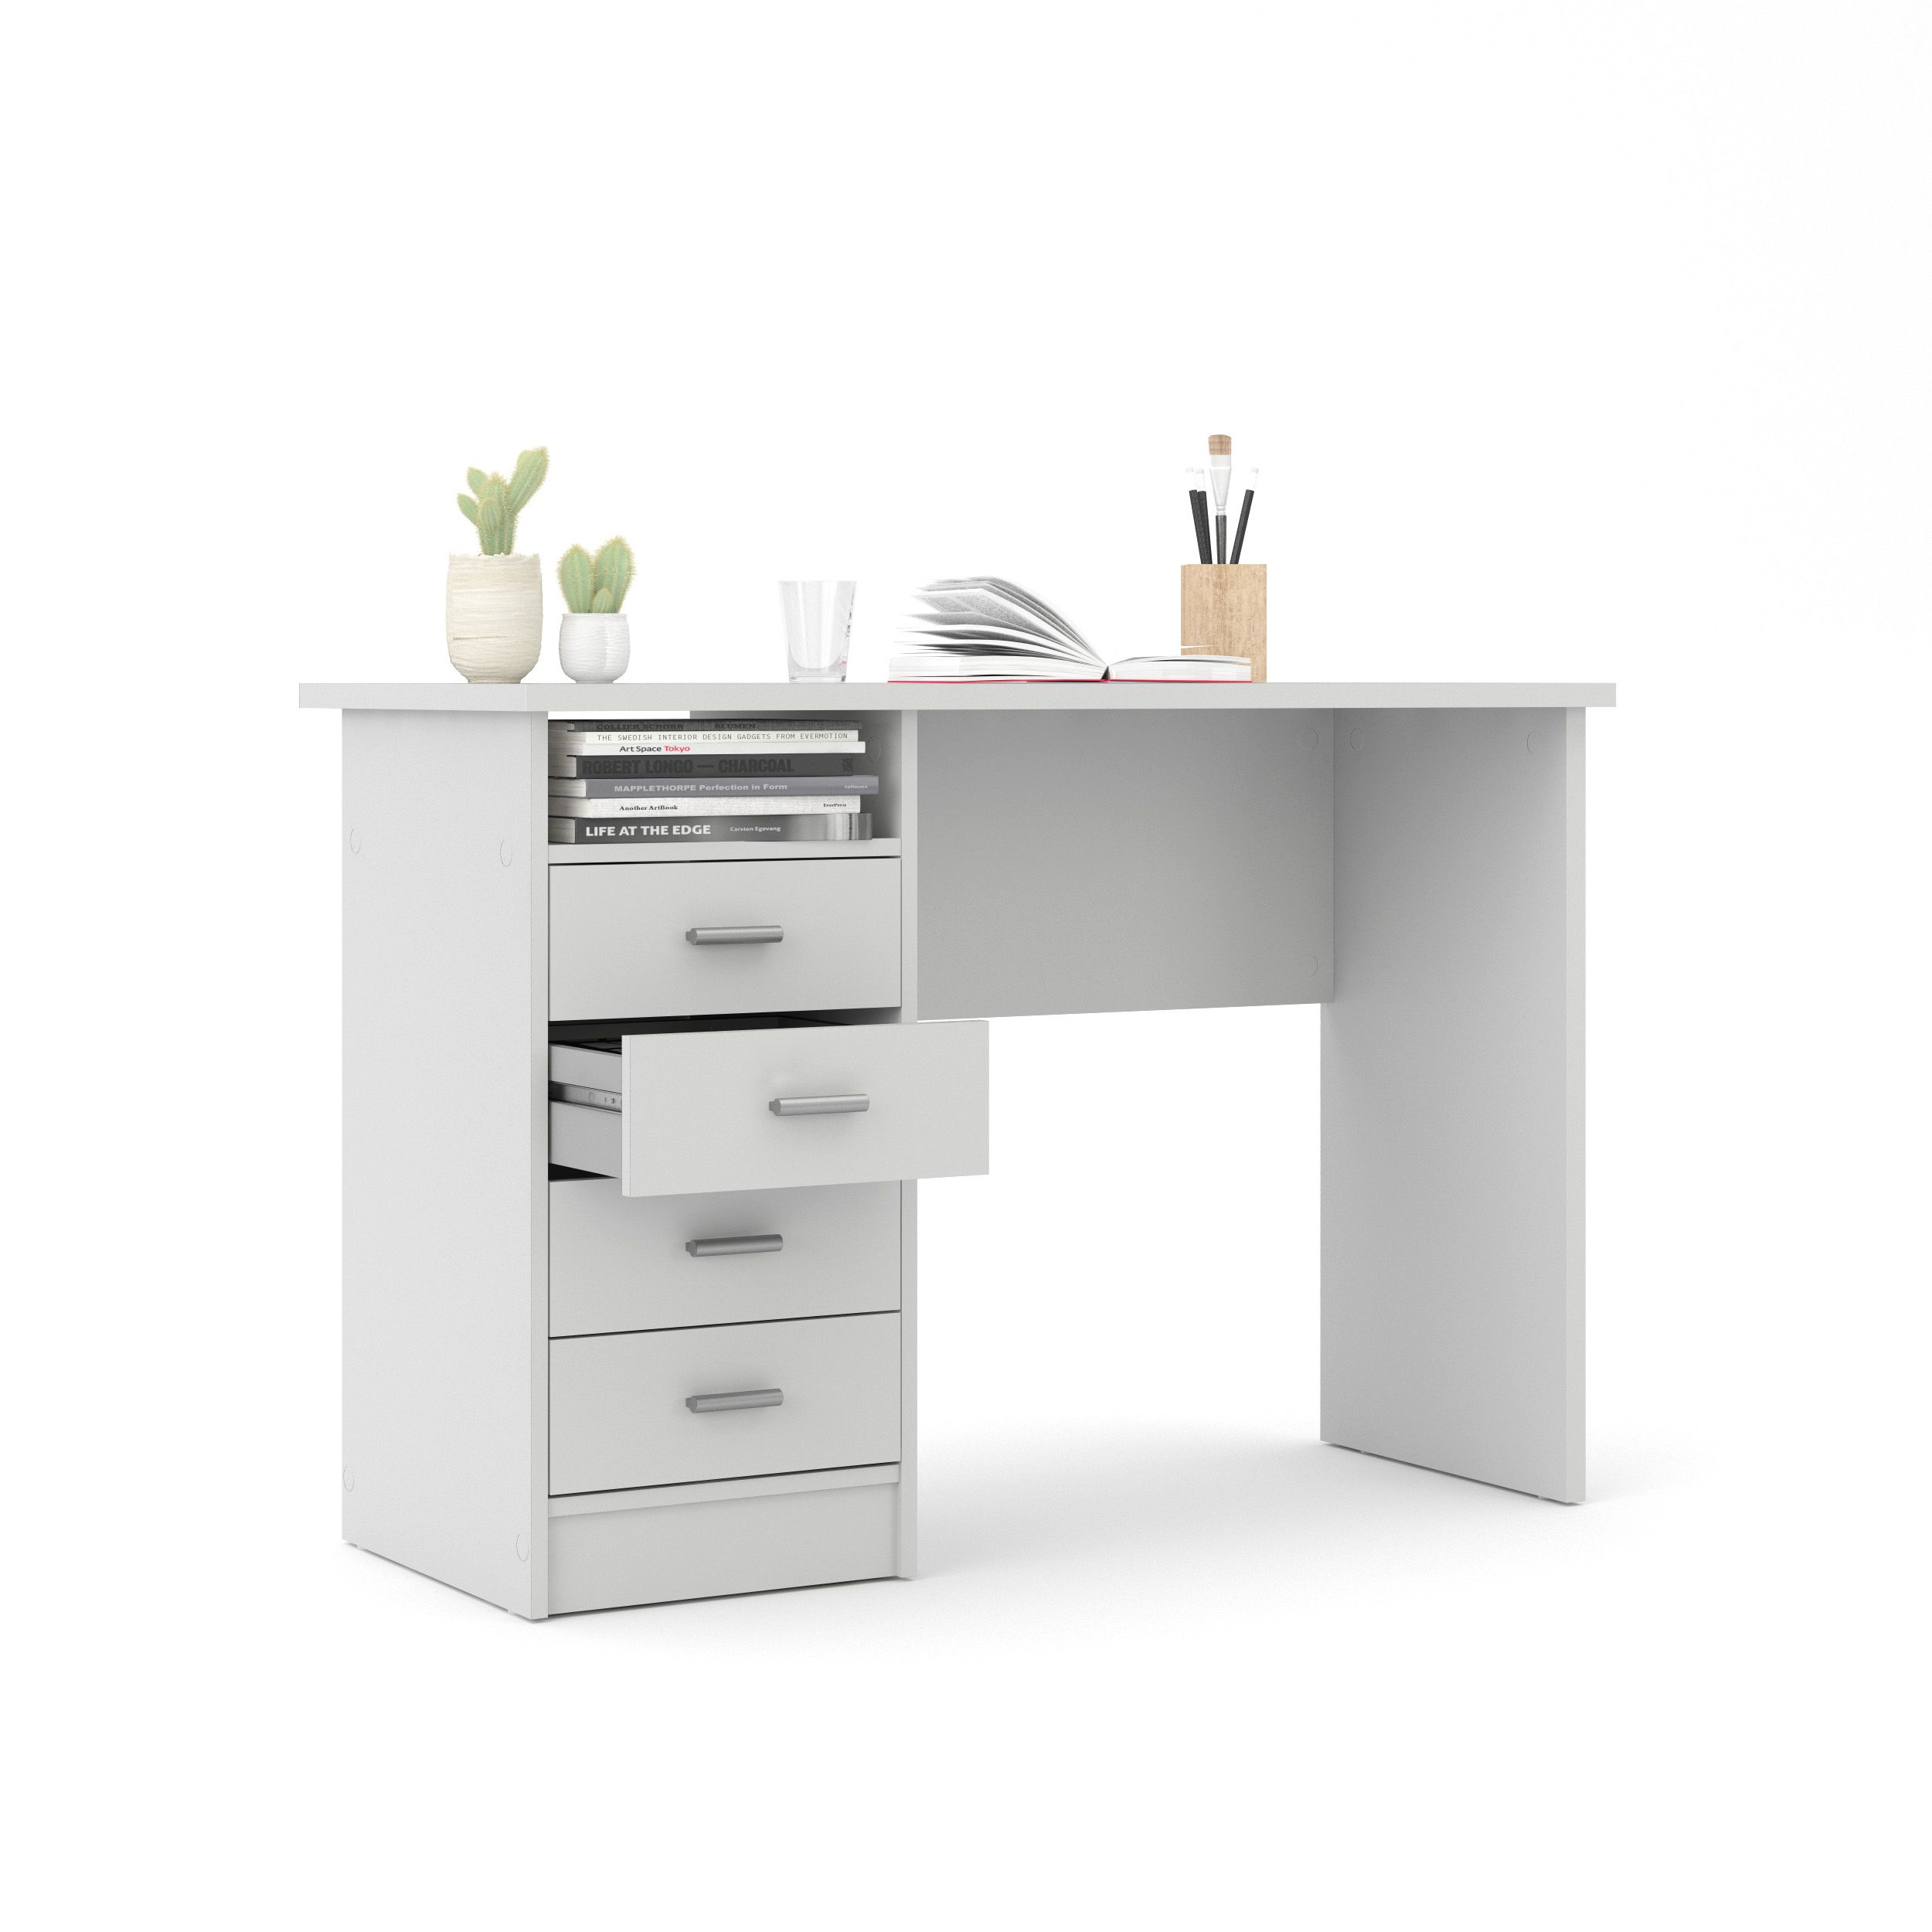 Tvilum Warner Computer Desk With Drawers White Finish Walmart Com Desk With Drawers White Desk Bedroom White Desk With Drawers